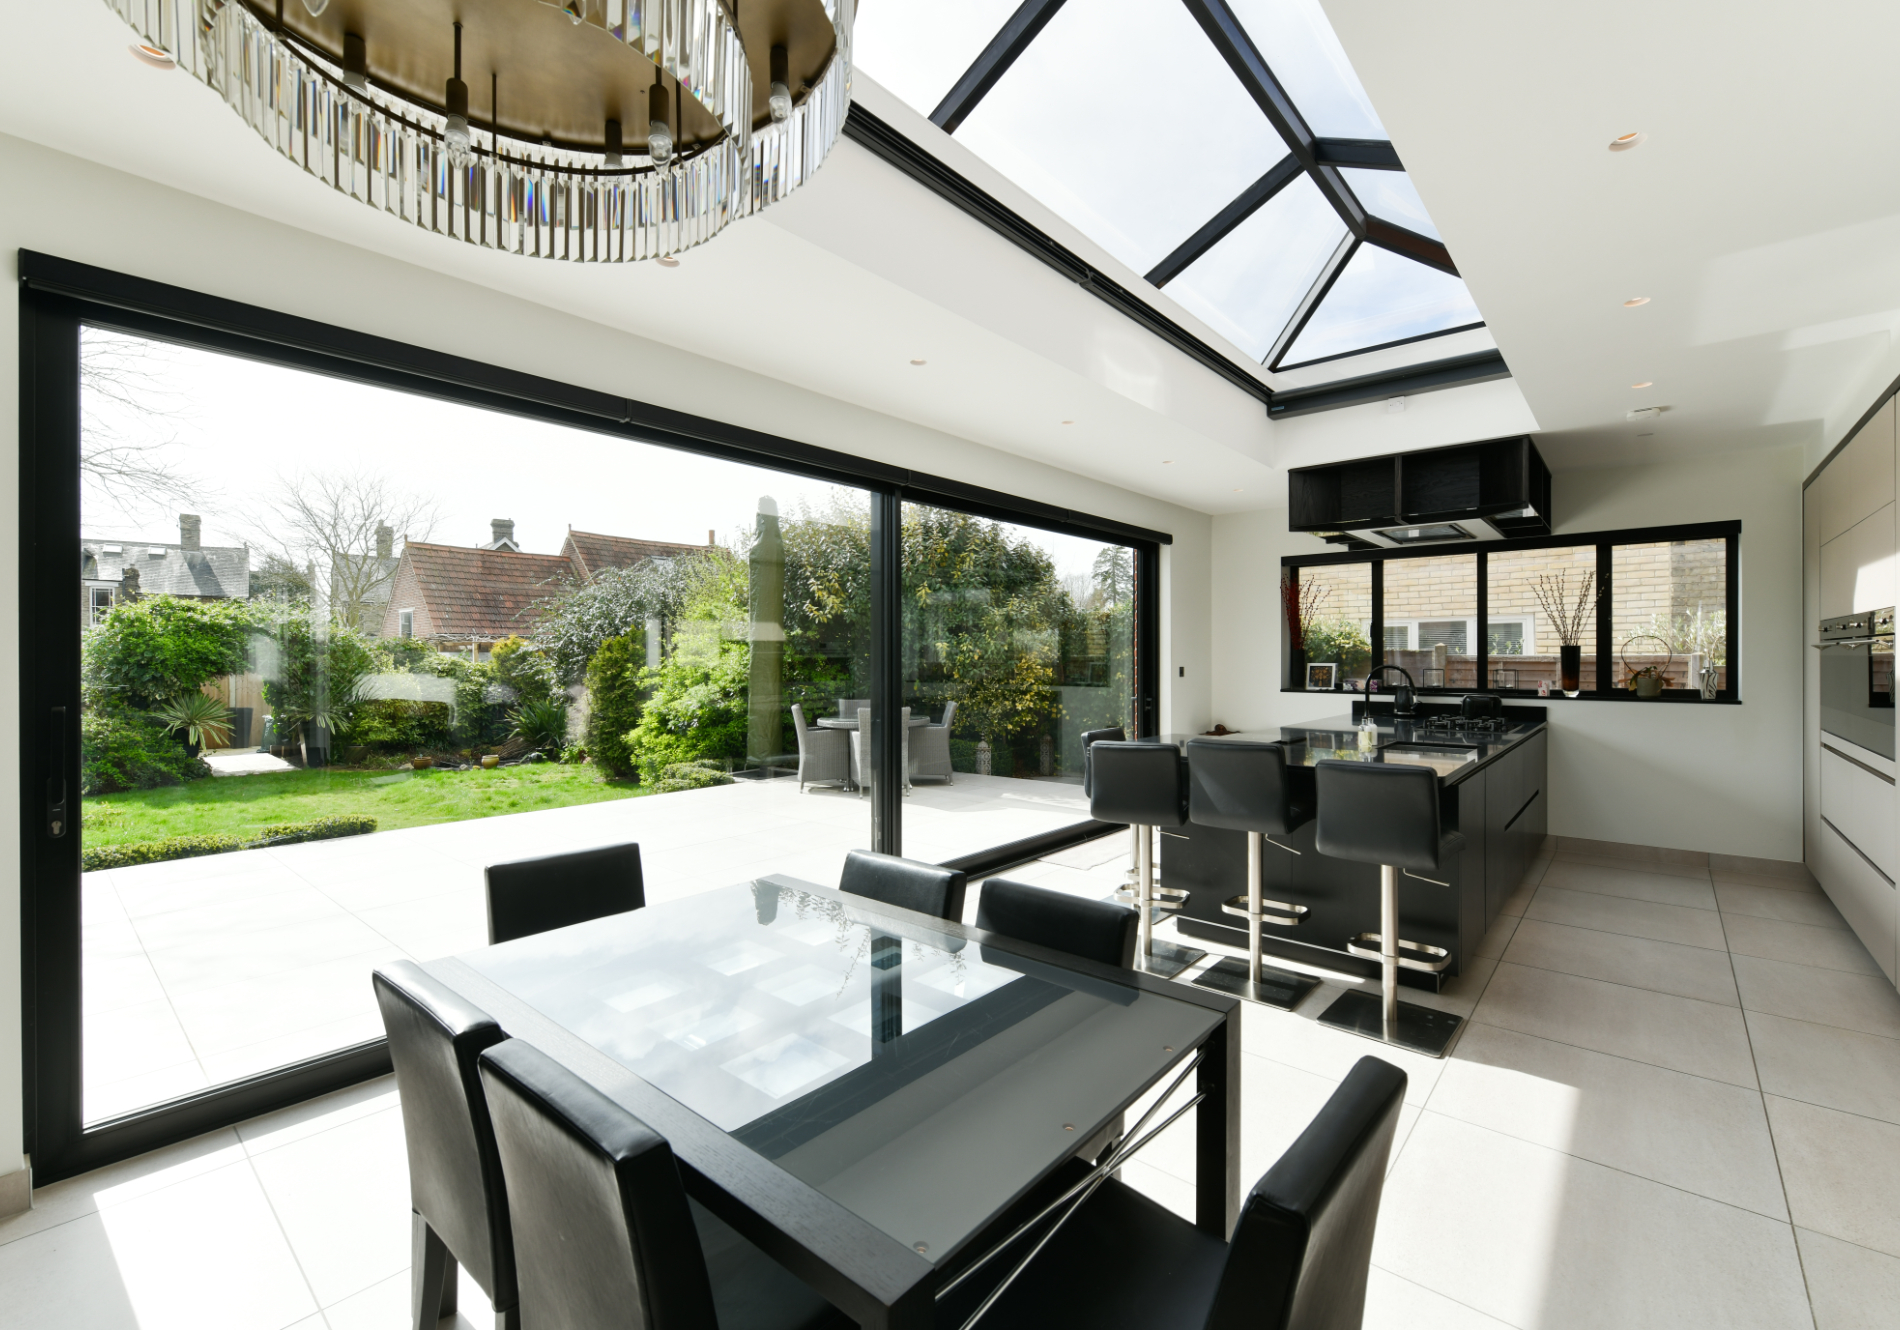 Colchester rear extension featuringGlide S sliding Doors, Aluminium Roof Lanterns and Aluminium Windows